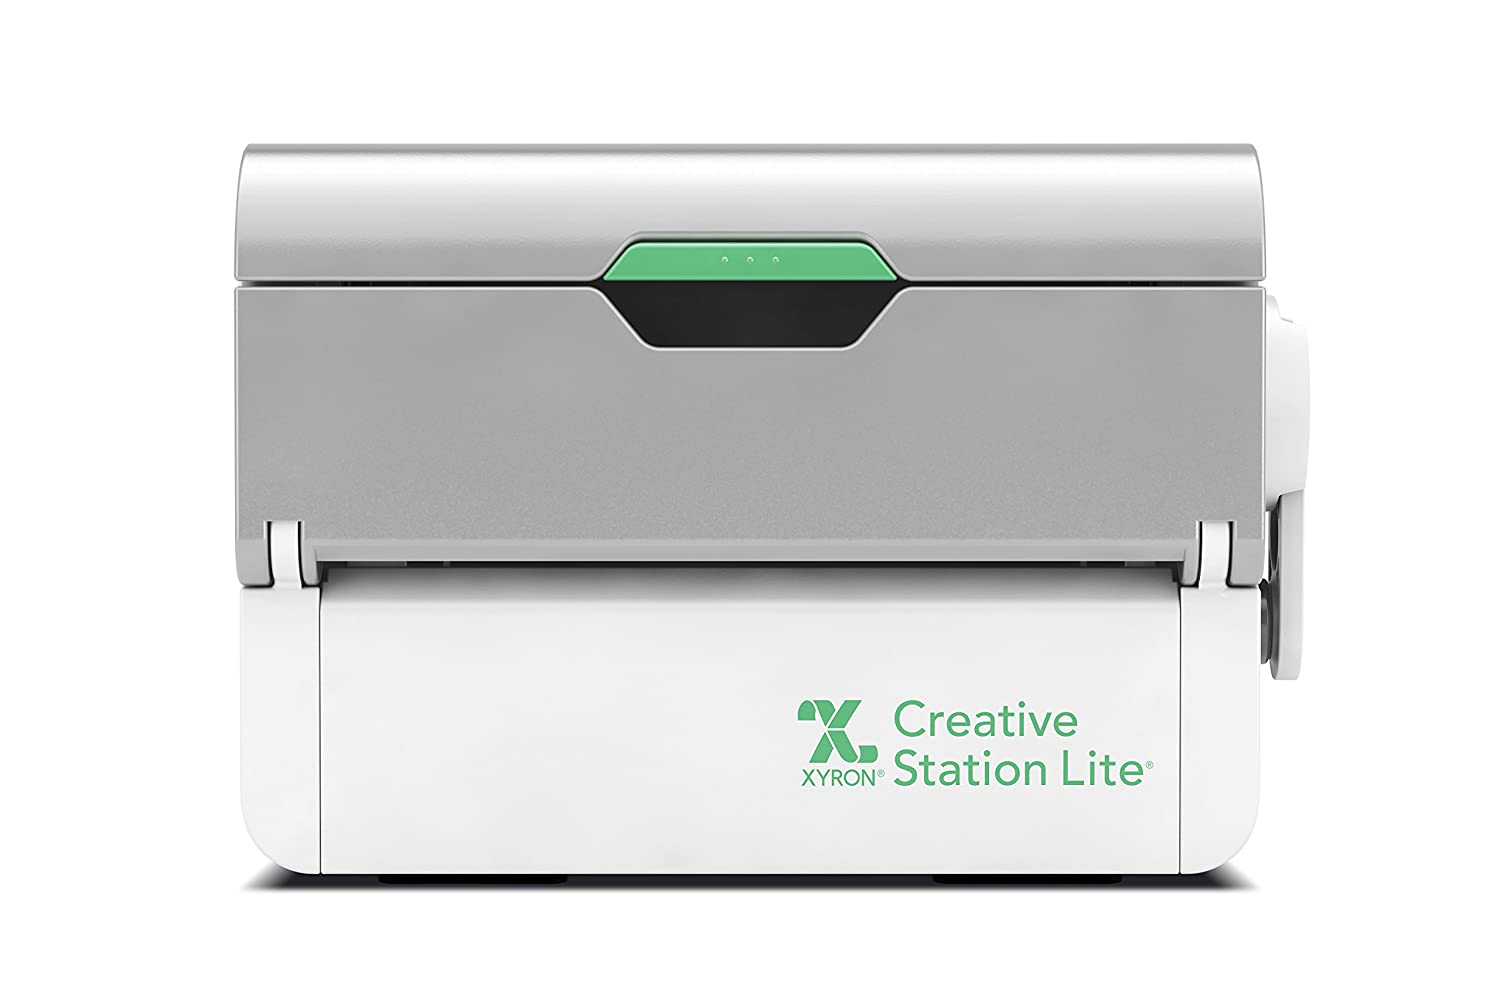 Xyron 608931028782 624740 Creative Station Lite (5 Inch with 3 Inch Option), White